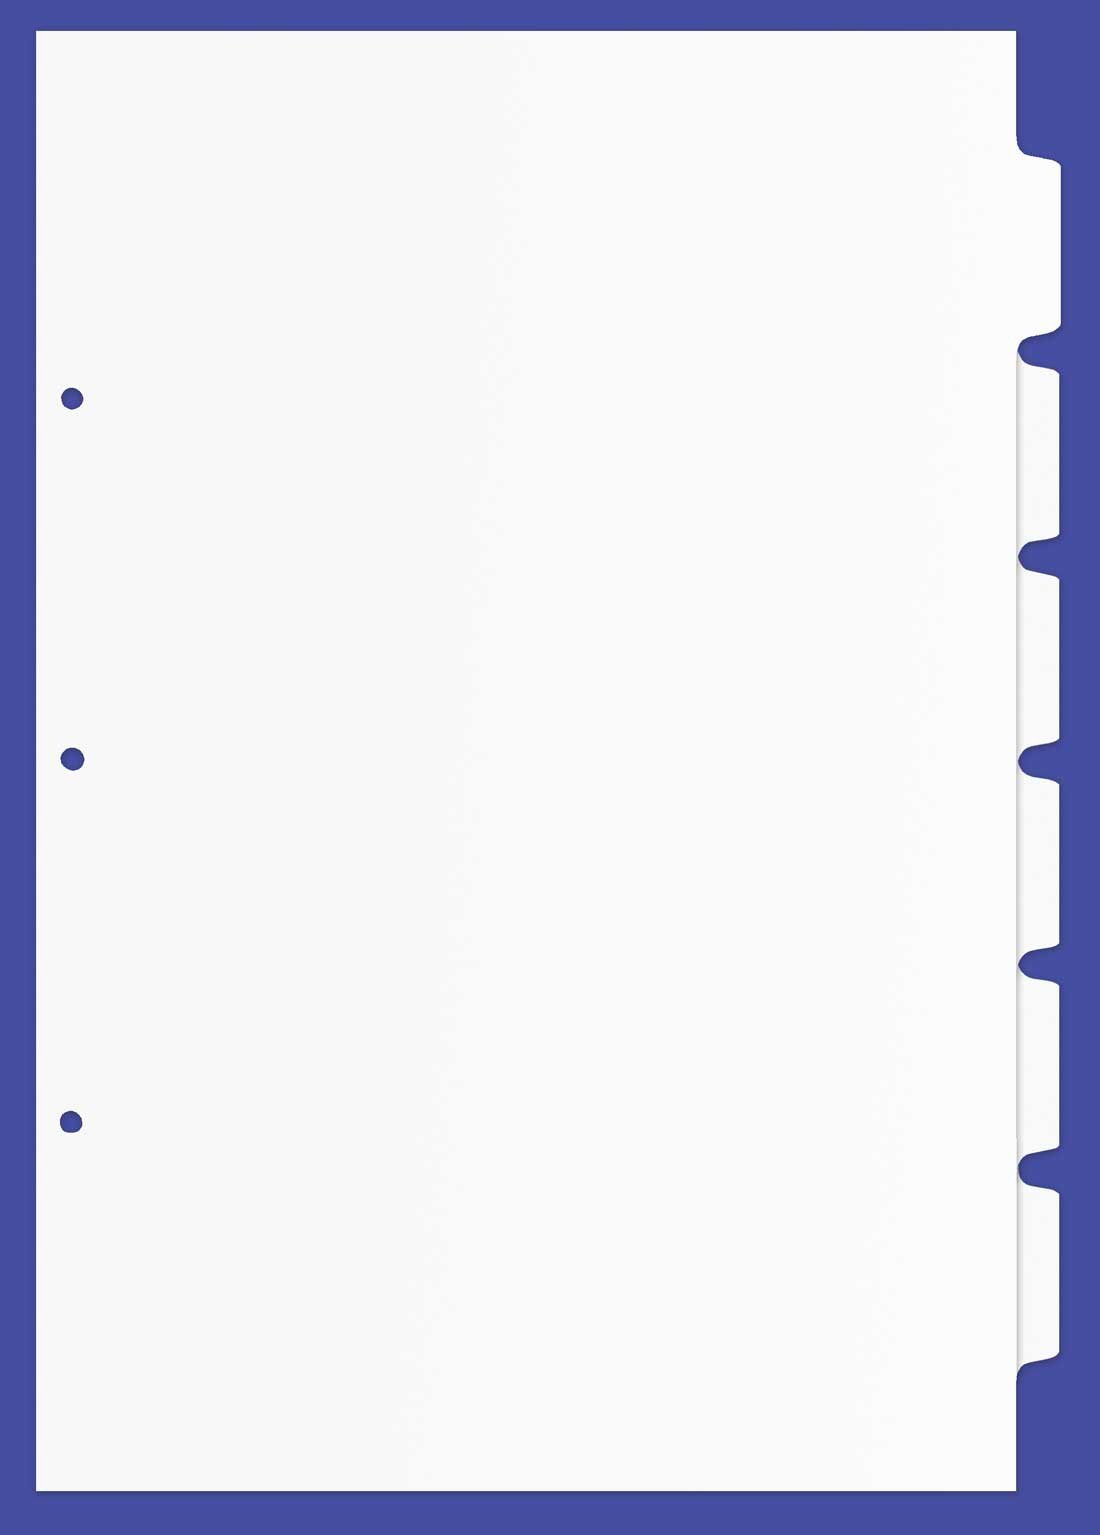 11x17 6 Tabbed Dividers, 17 x 11 Inches, Pack of 48, White (690804) by Ruby Paulina LLC